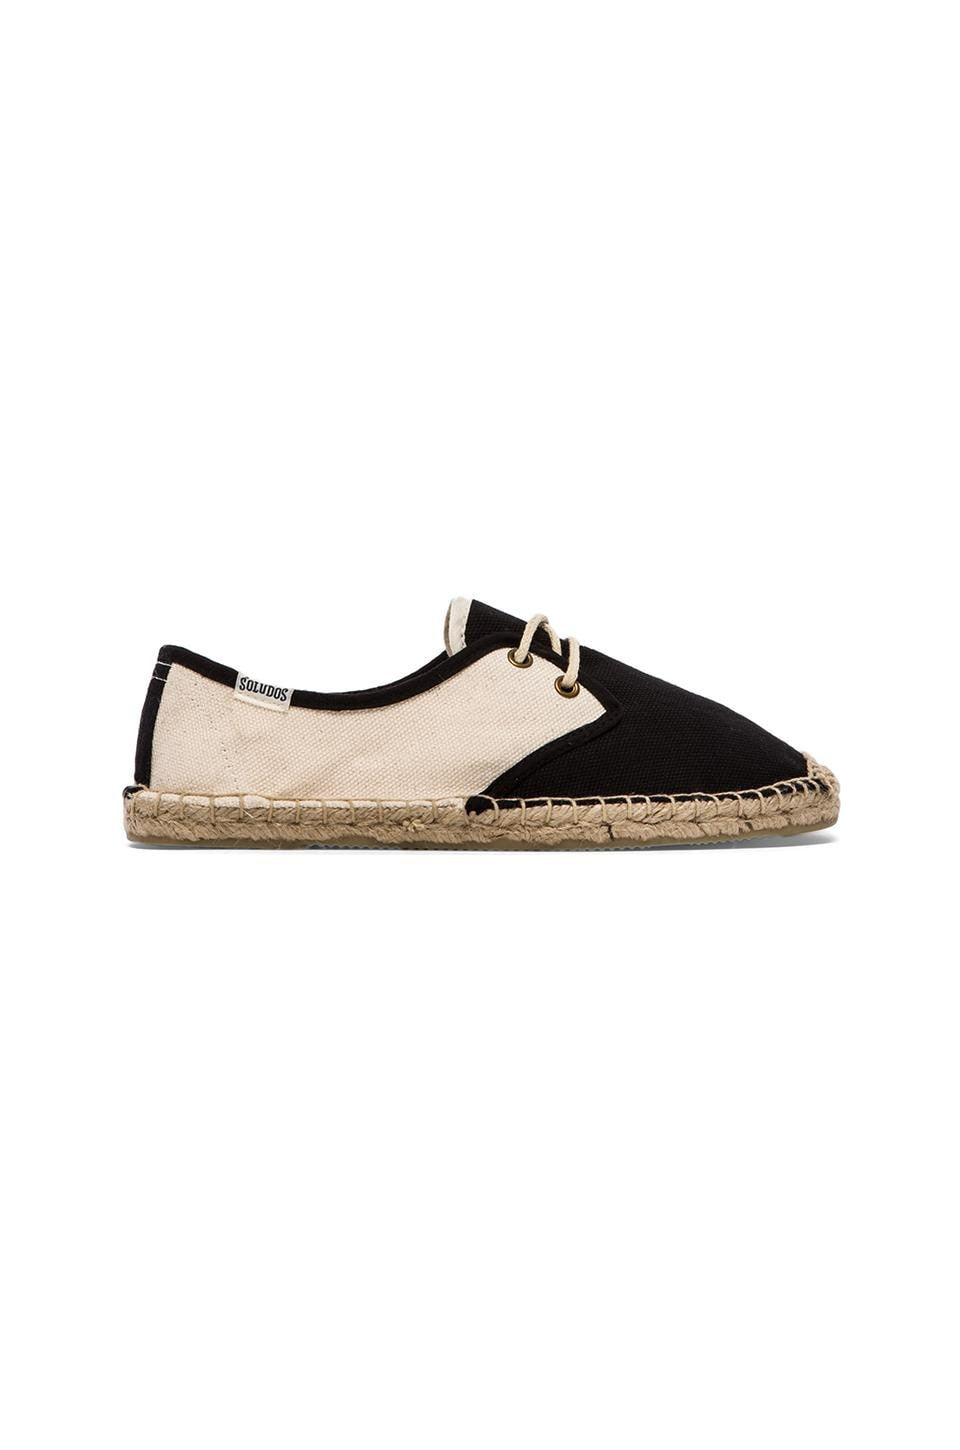 Soludos Colorblock Derby Lace Up in Black Natural